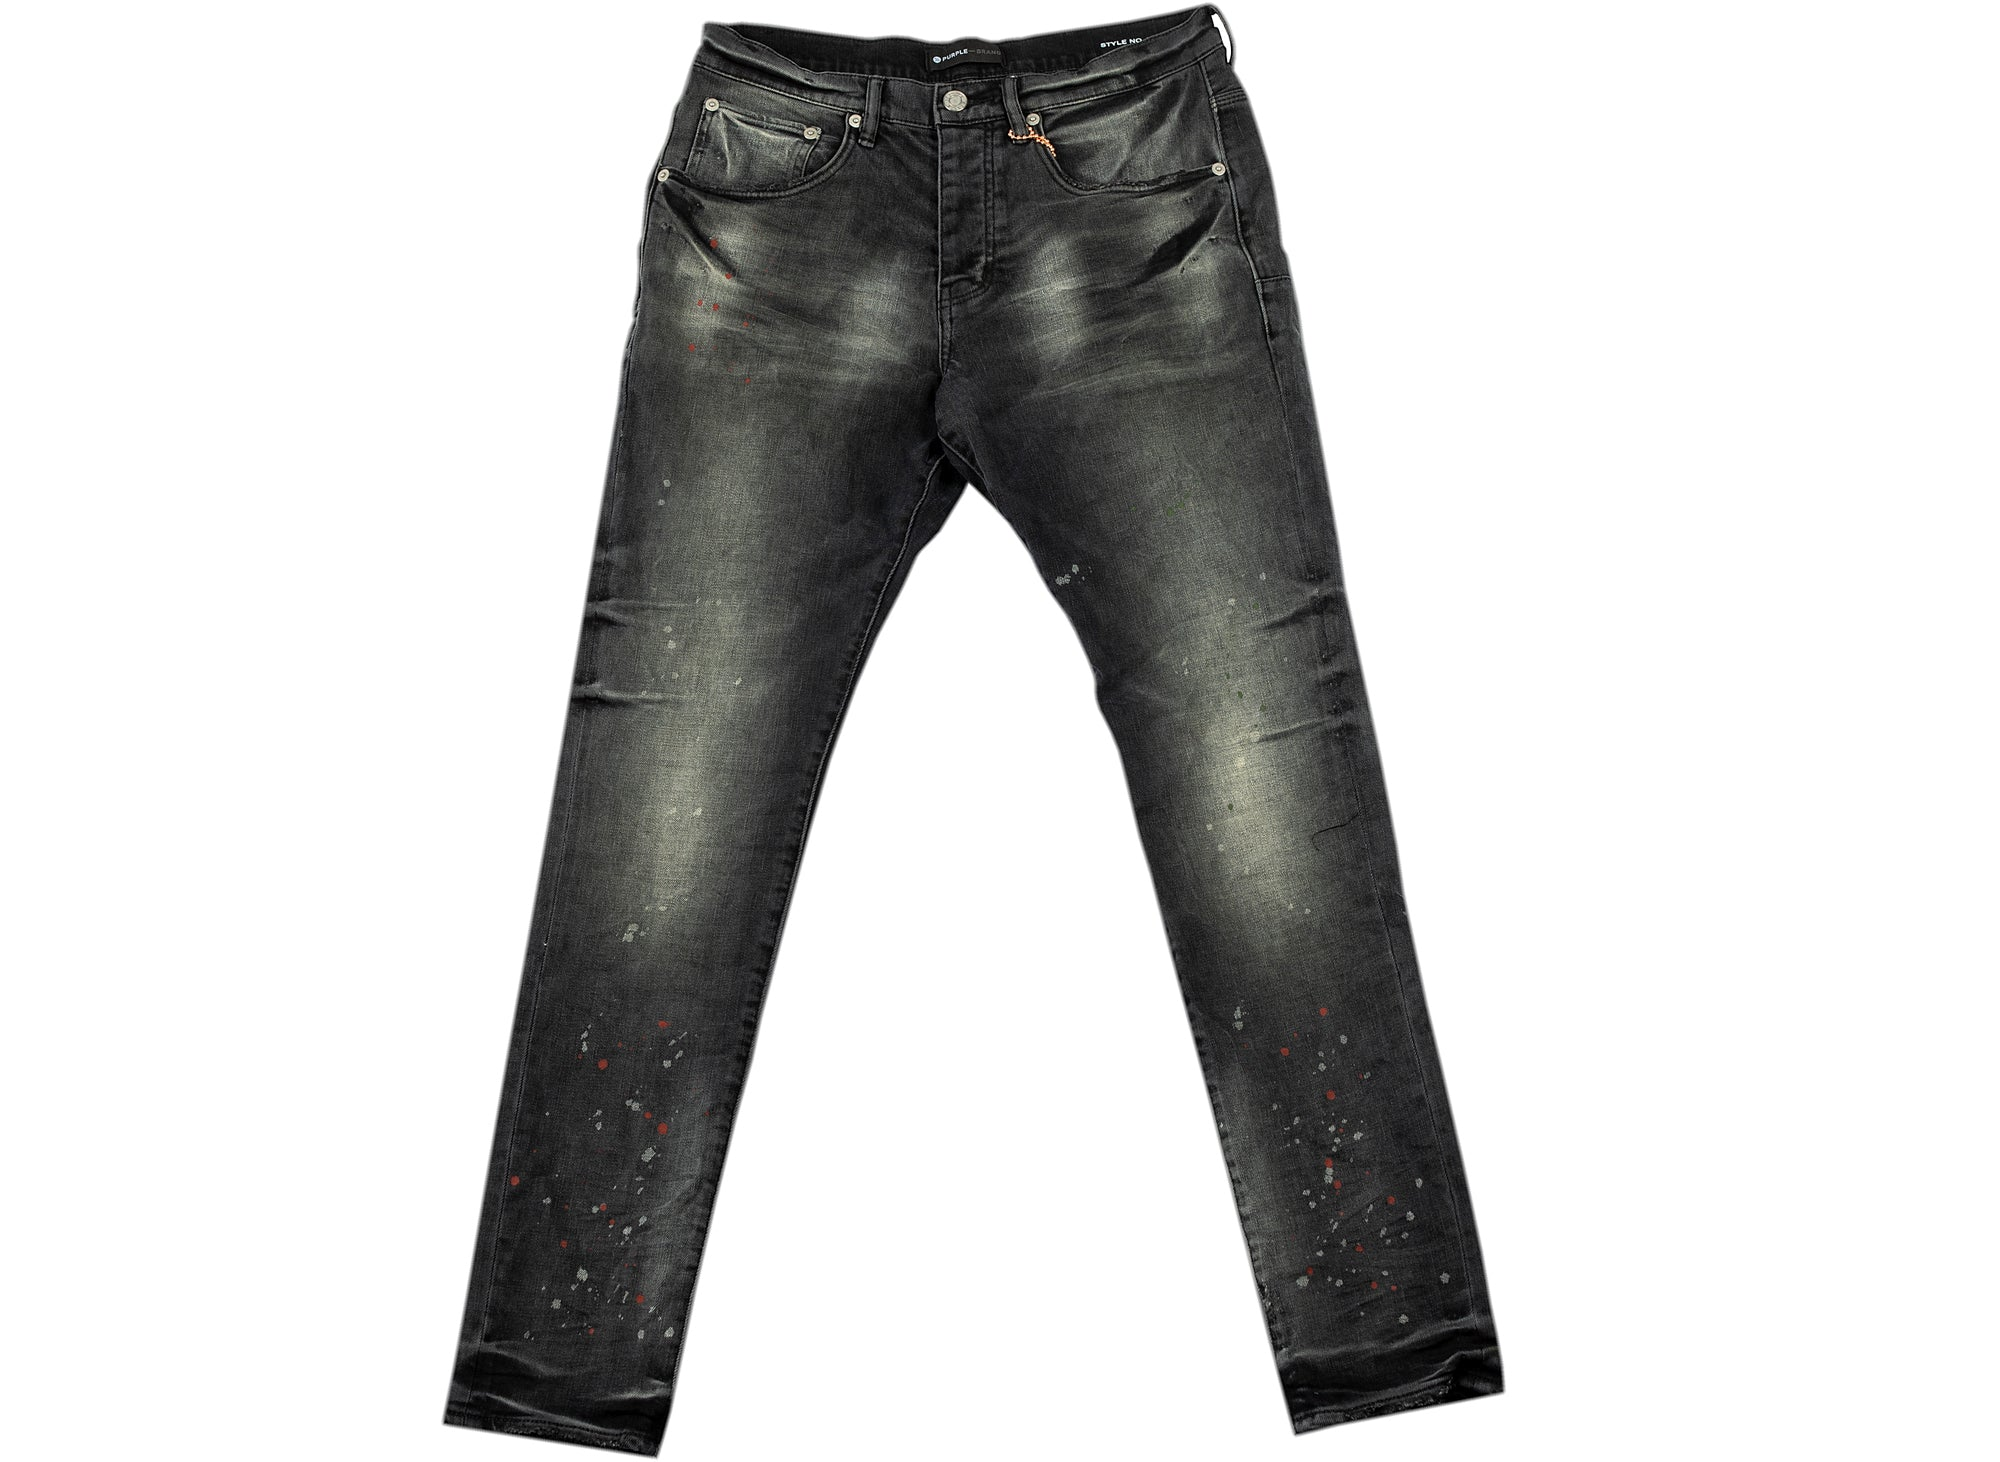 Purple Brand Vintage Spotted Black Wash Jeans xld